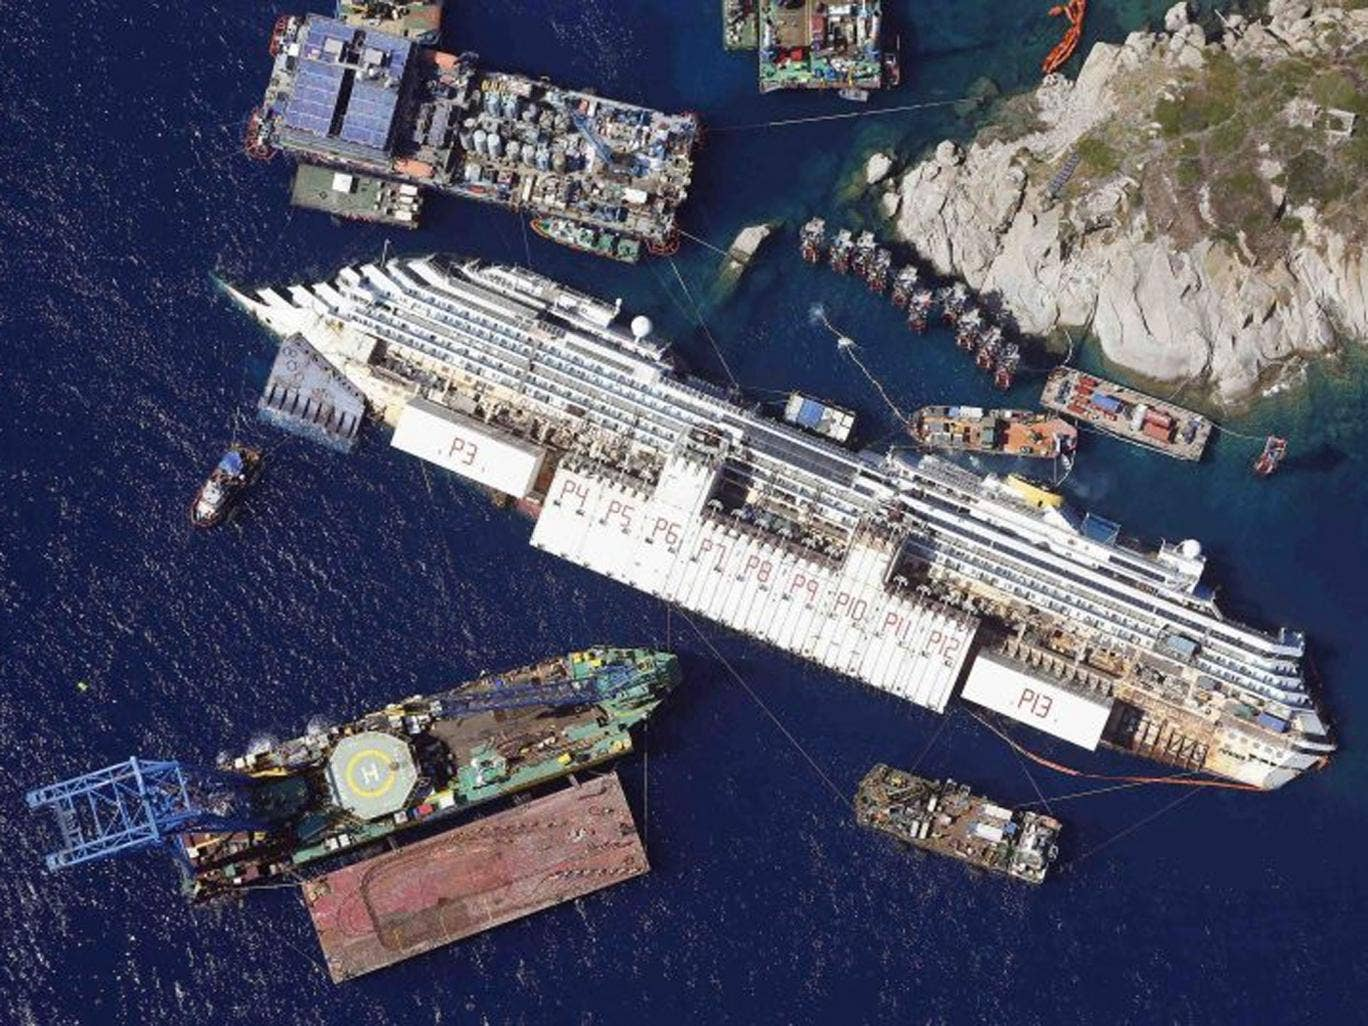 The Costa Concordia, which hit rocks off the shore of Giglio in January 2012